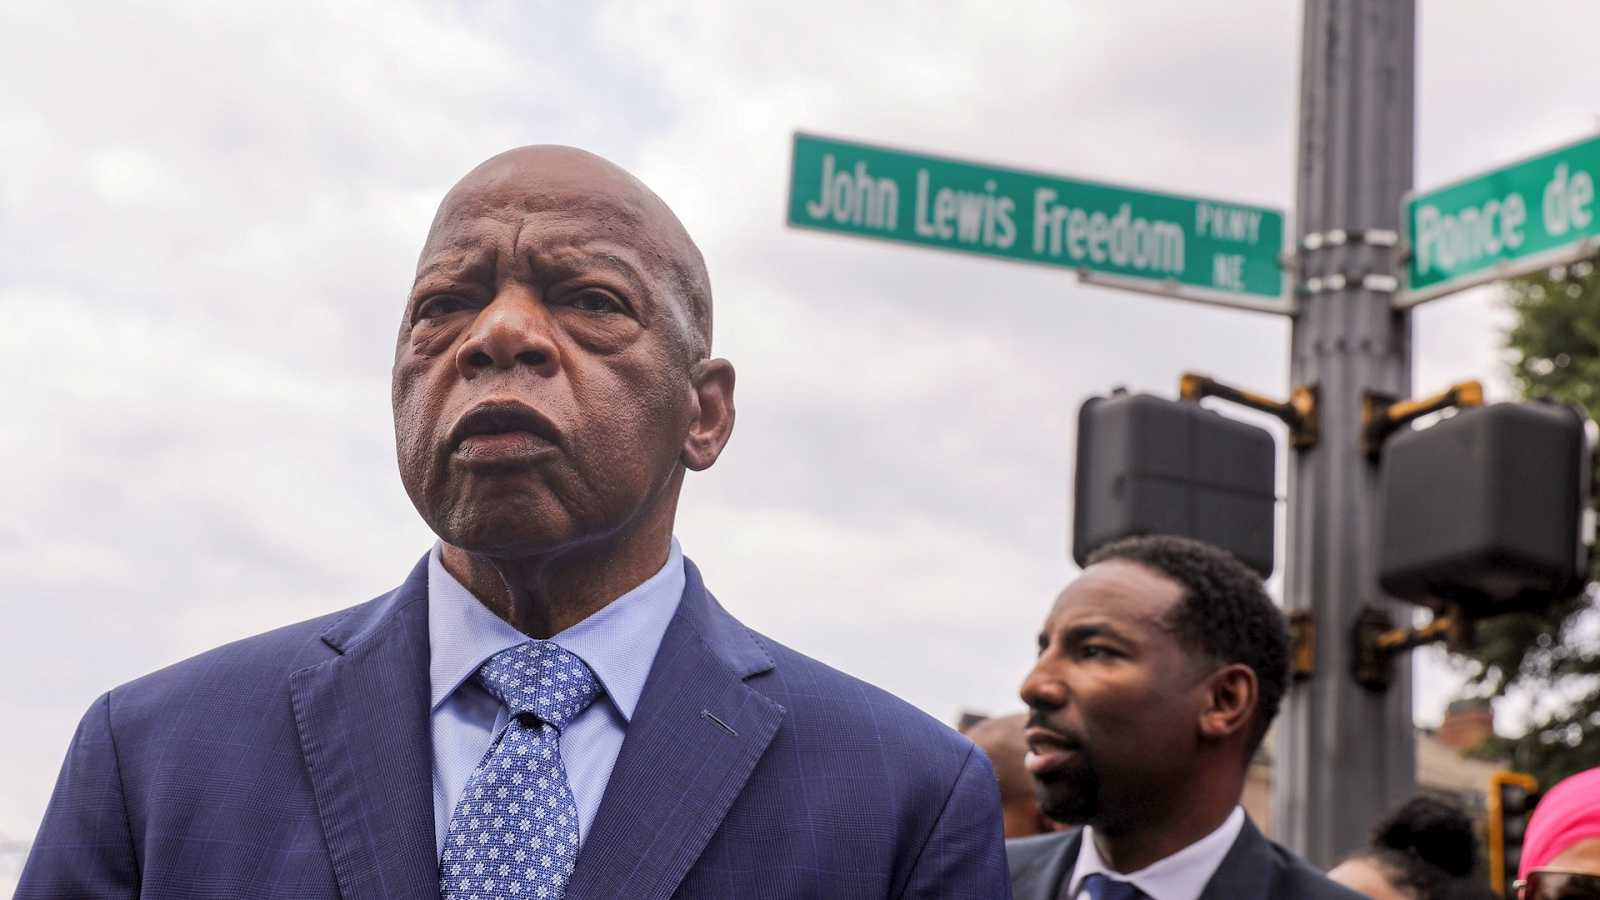 Apple donará los beneficios del documental sobre John Lewis a museos